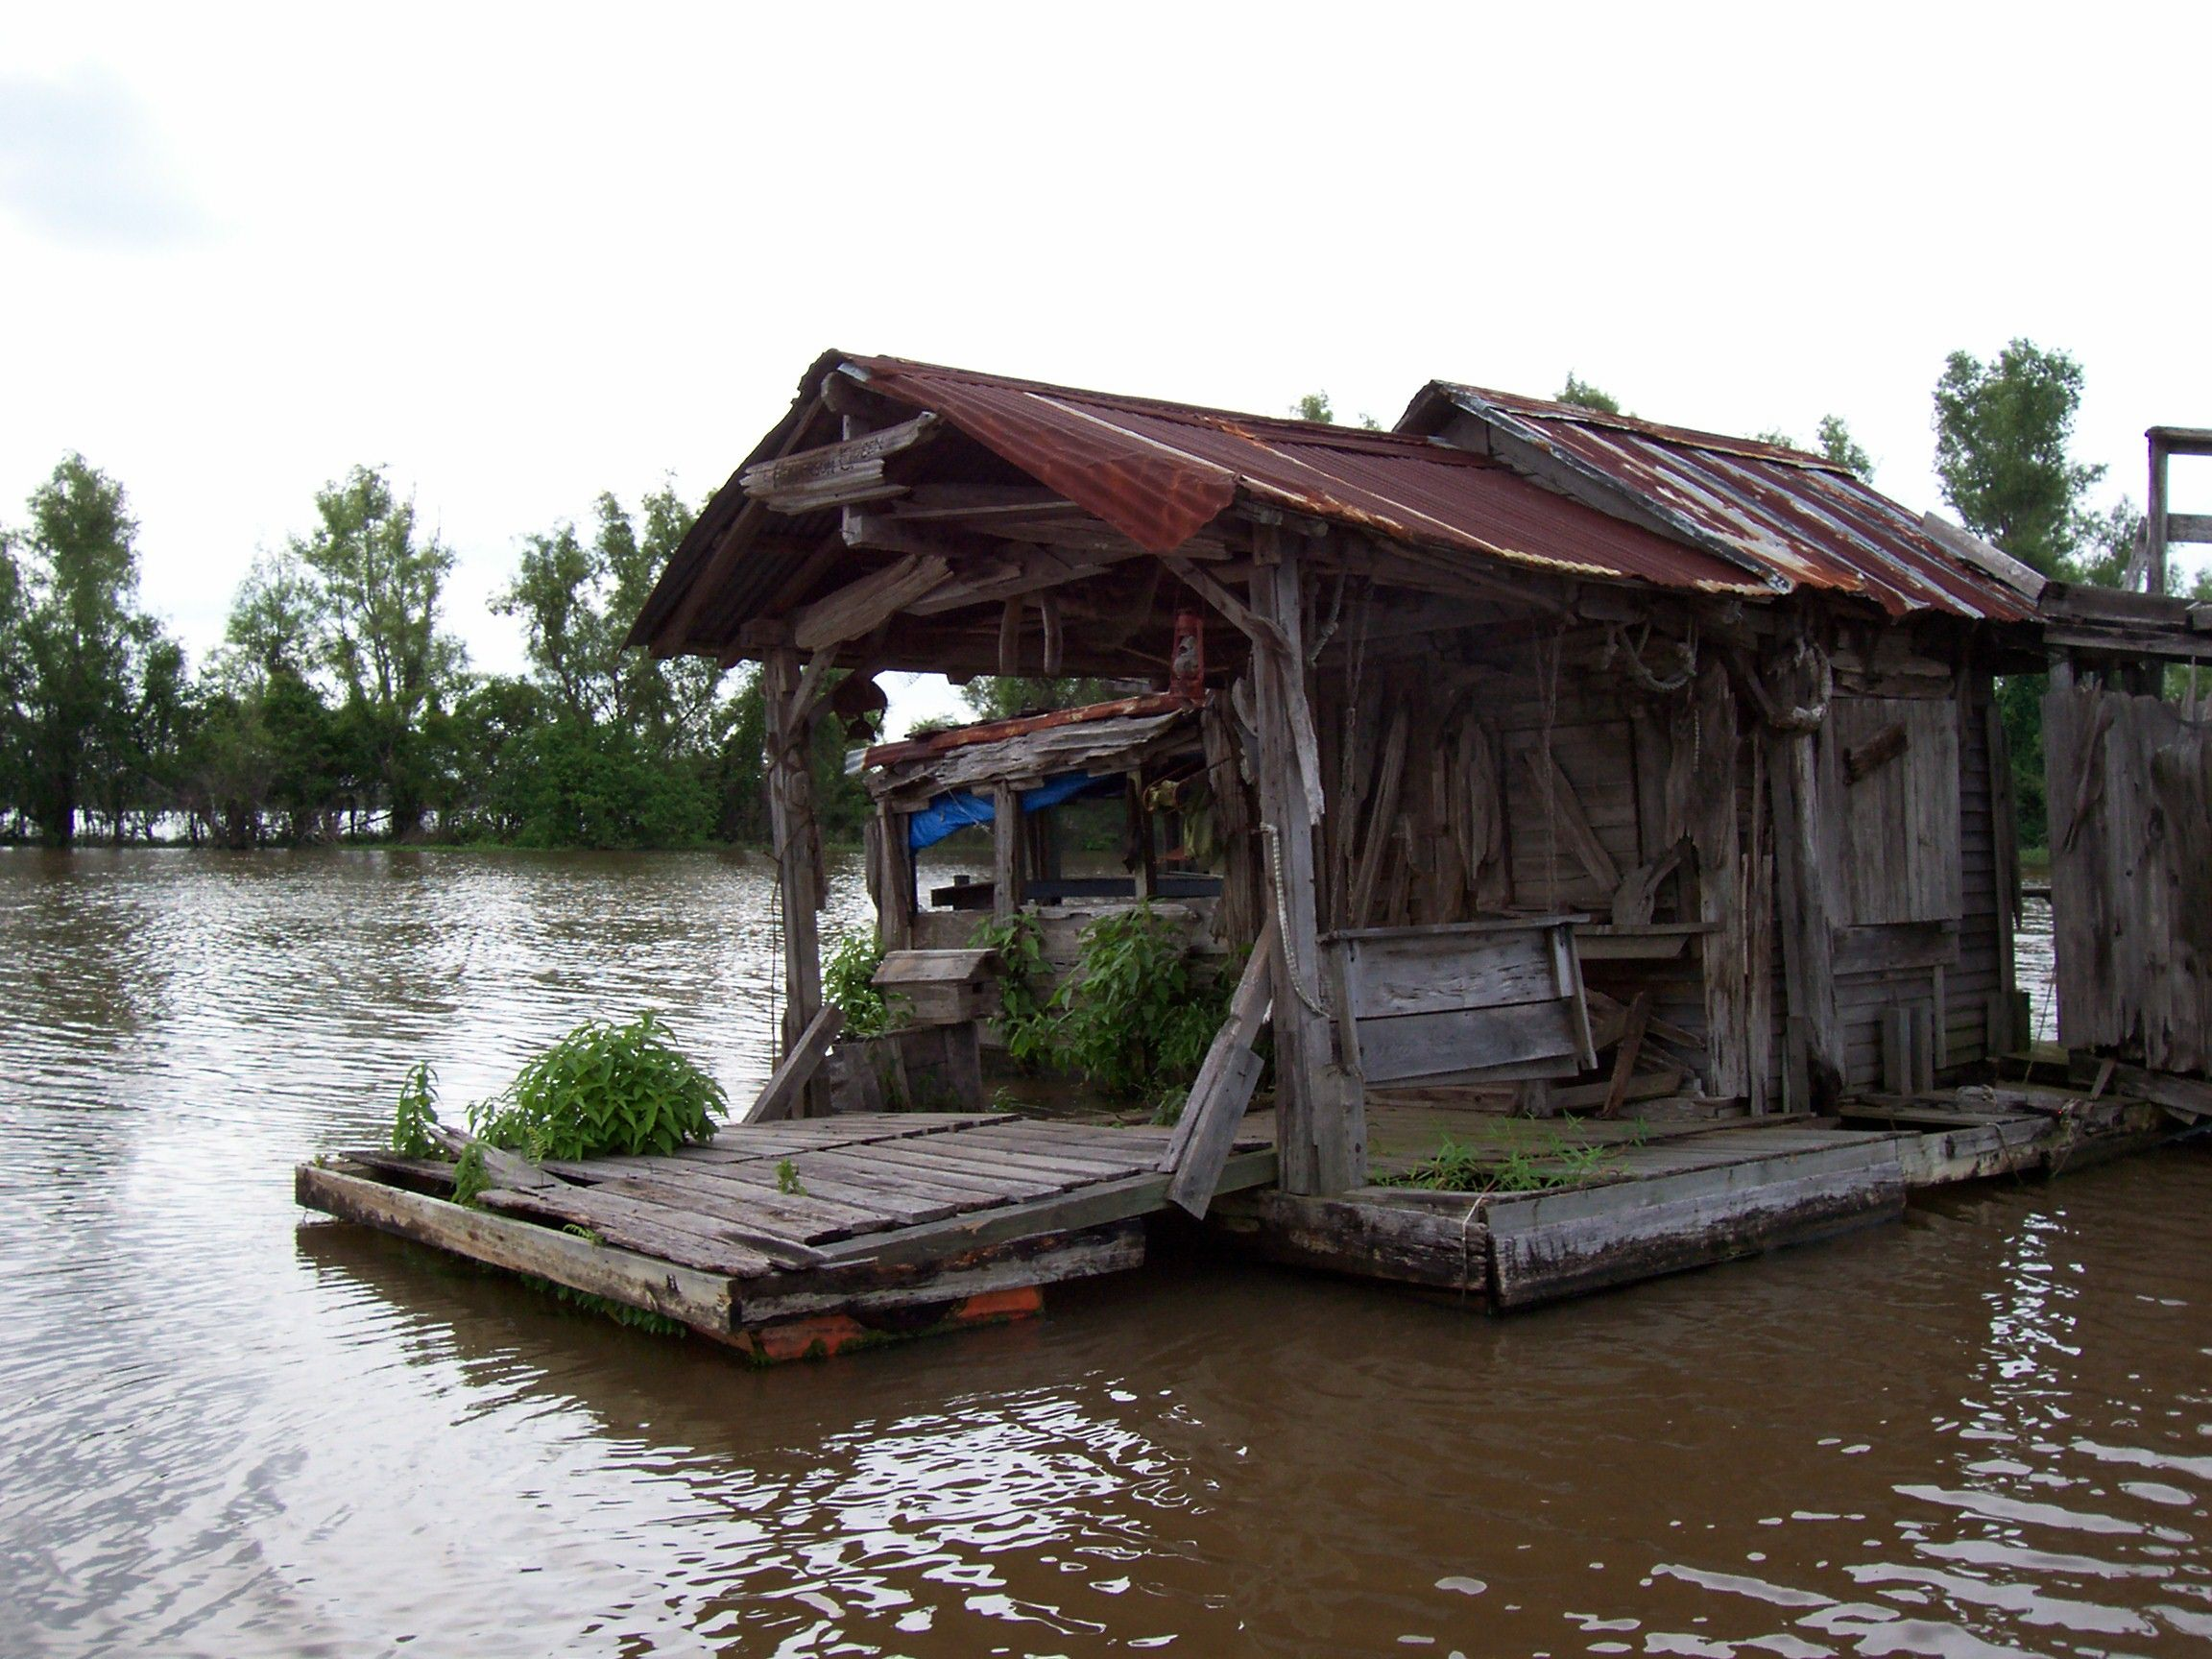 Aaa8 for Fishing camps for sale in mississippi